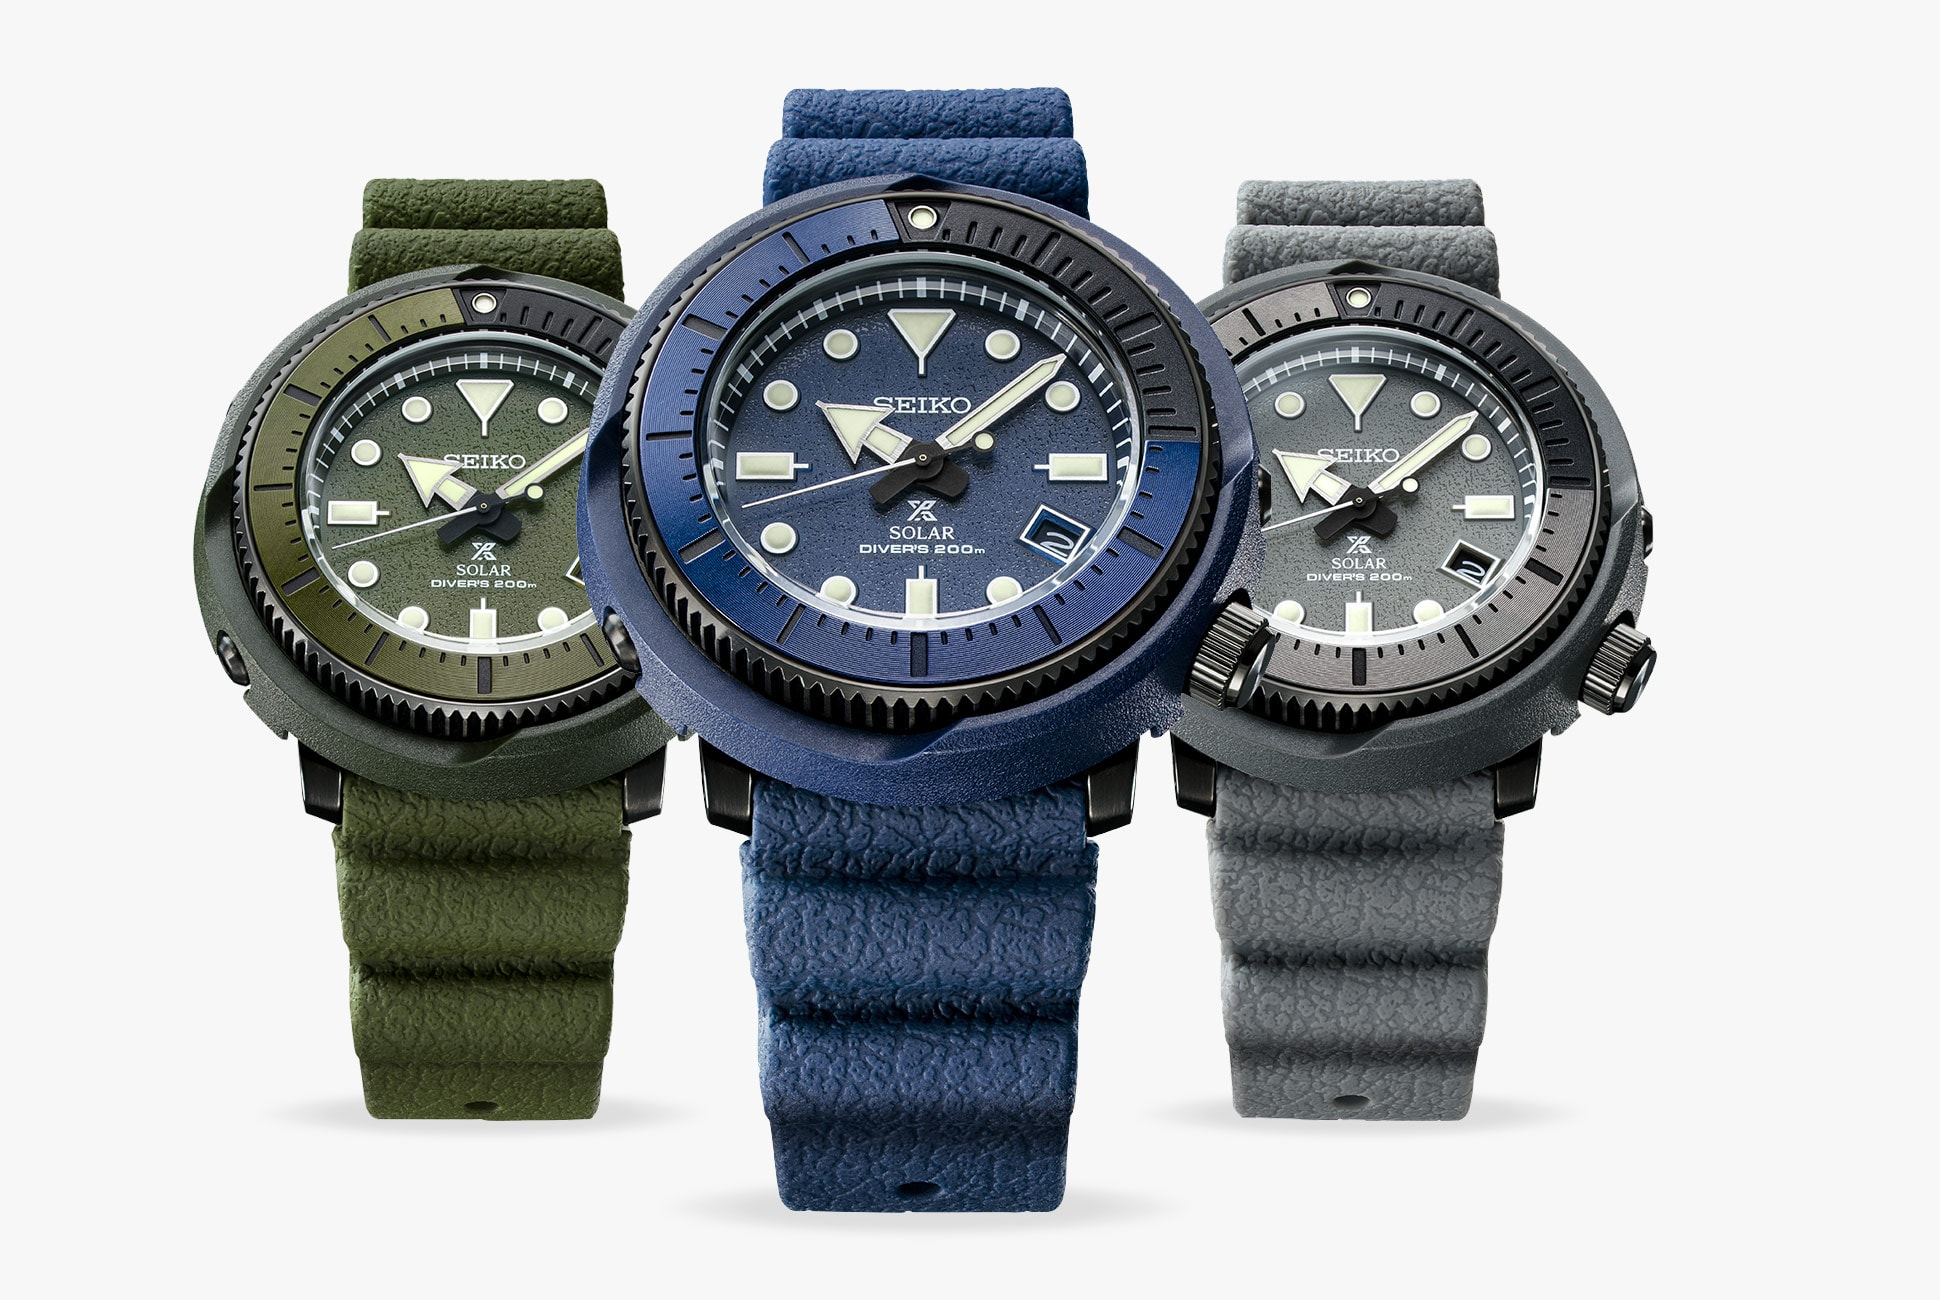 dd51c1657a2b The popular Seiko  Tuna  and  Baby Tuna  watches aren t ones that tend to  make an appearance on Horologium